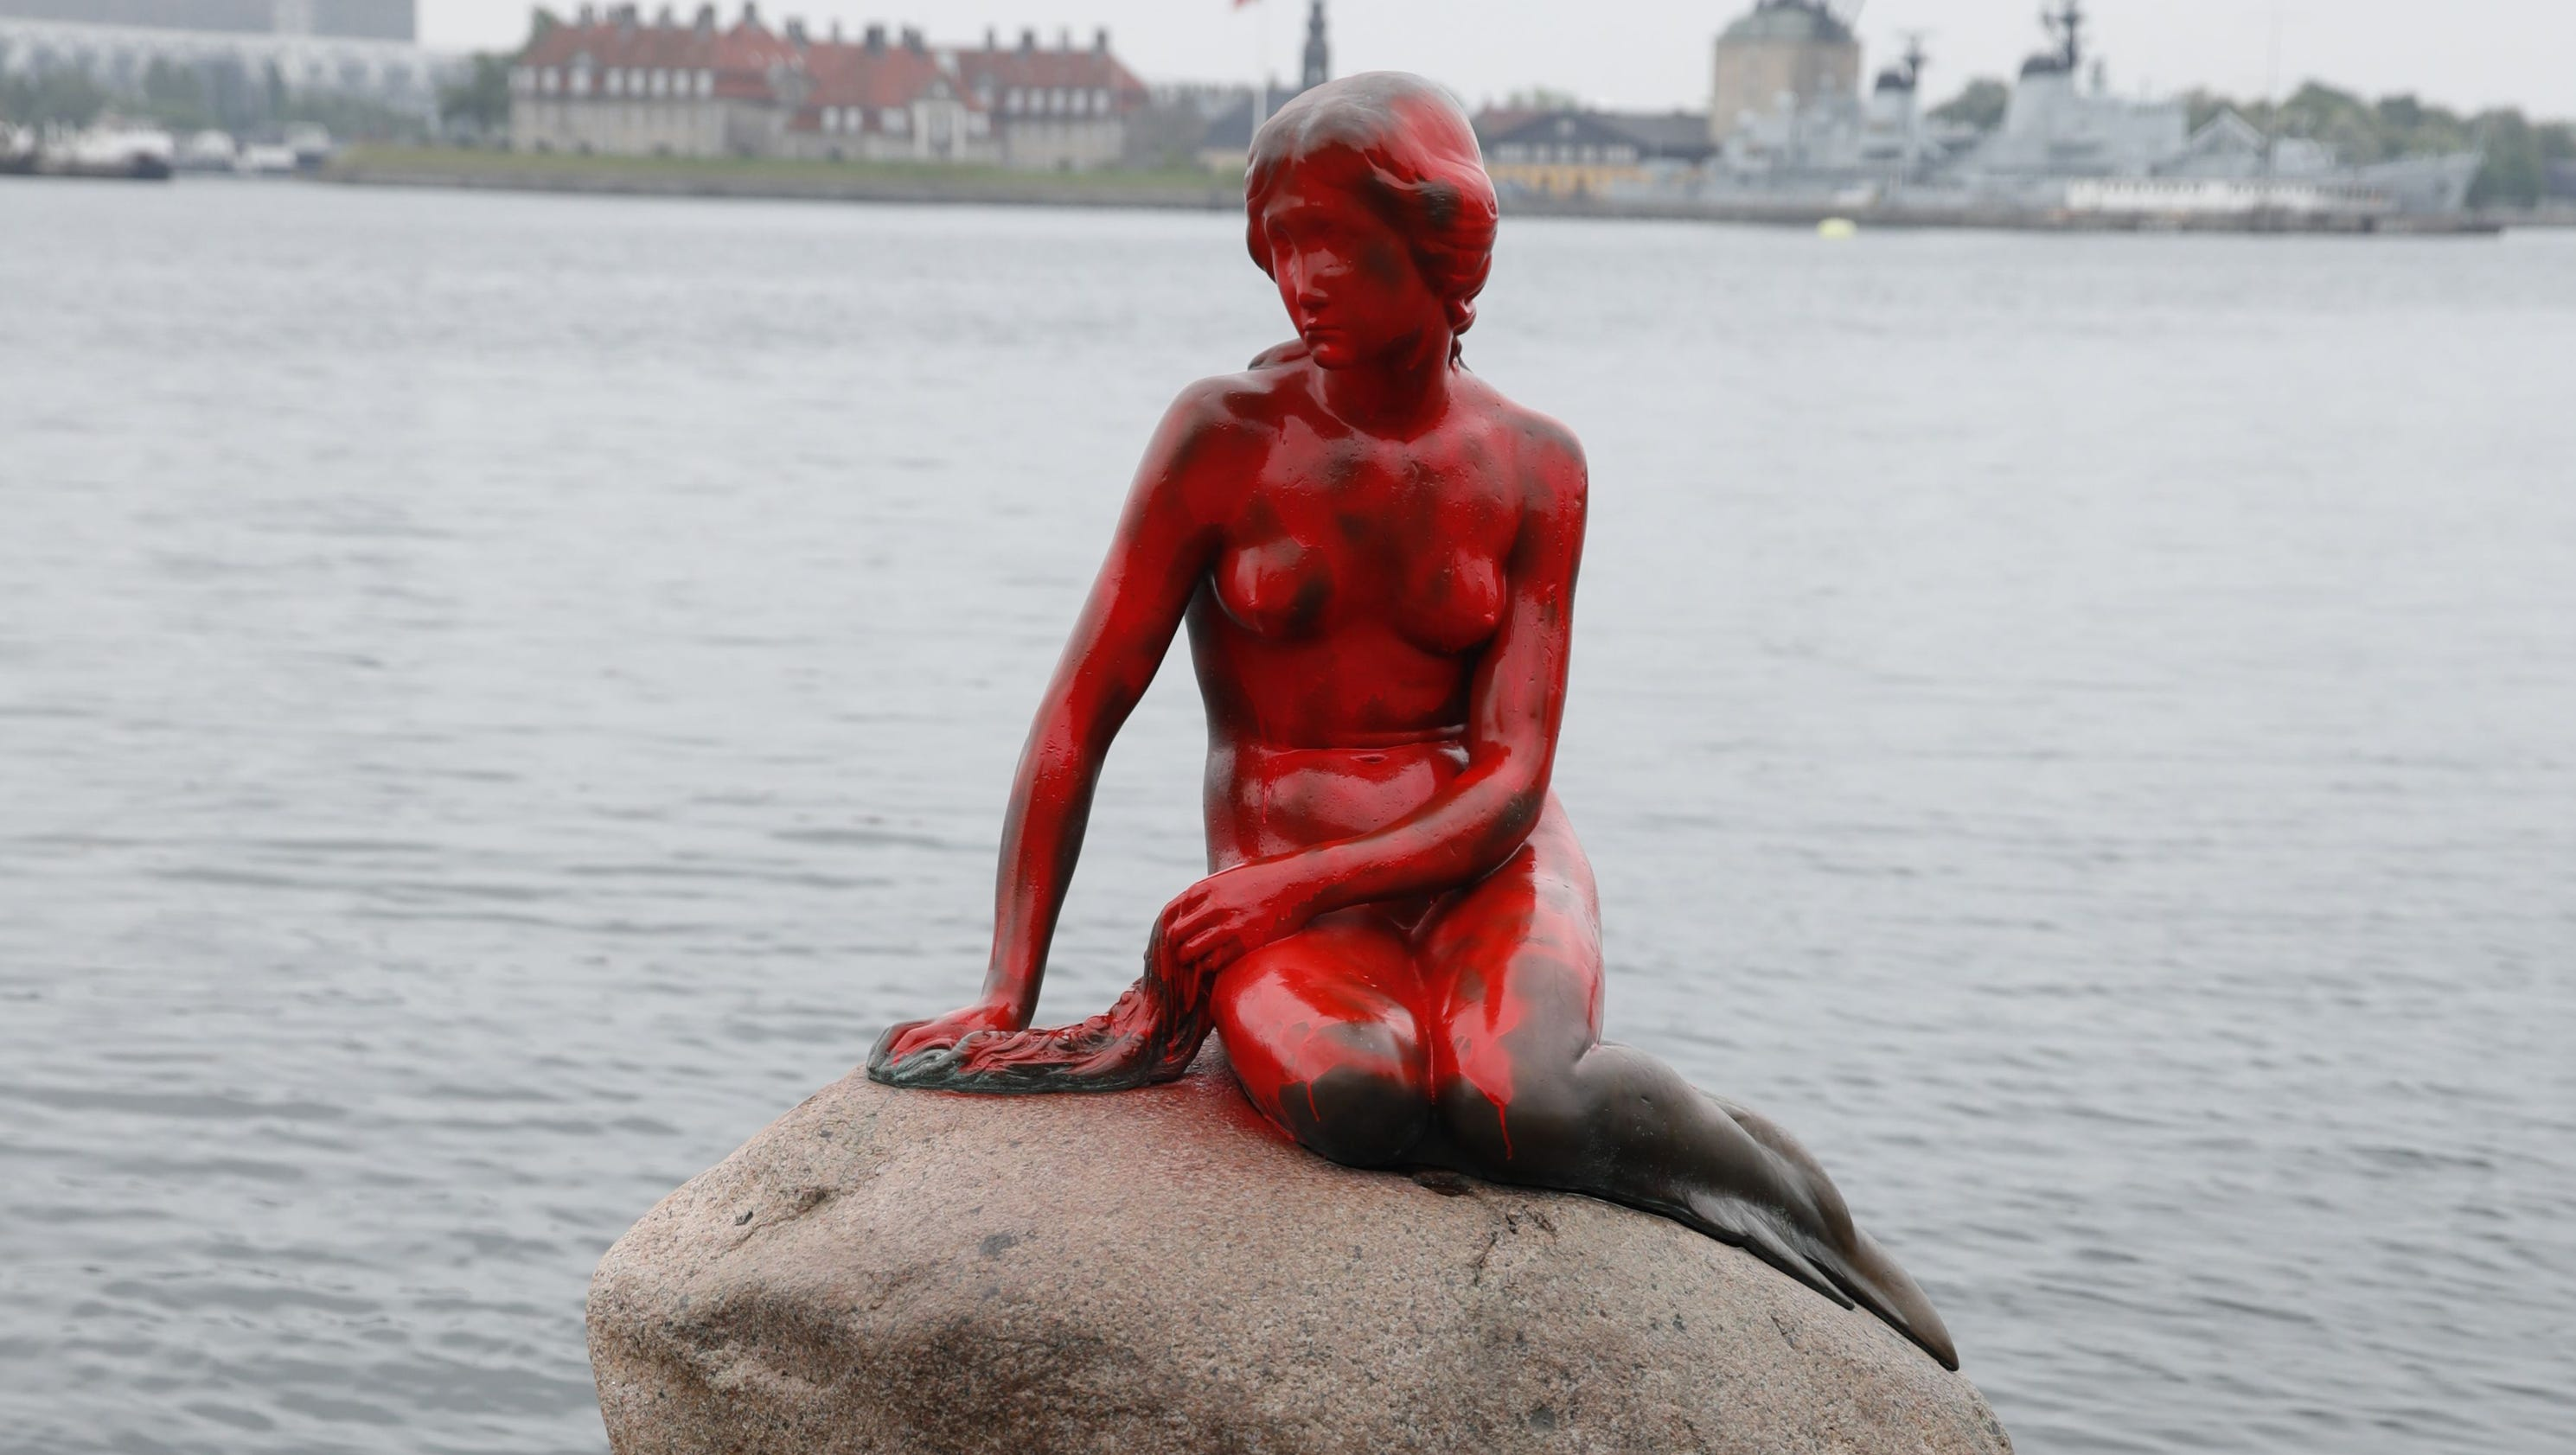 little mermaid statue in denmark painted red in whale